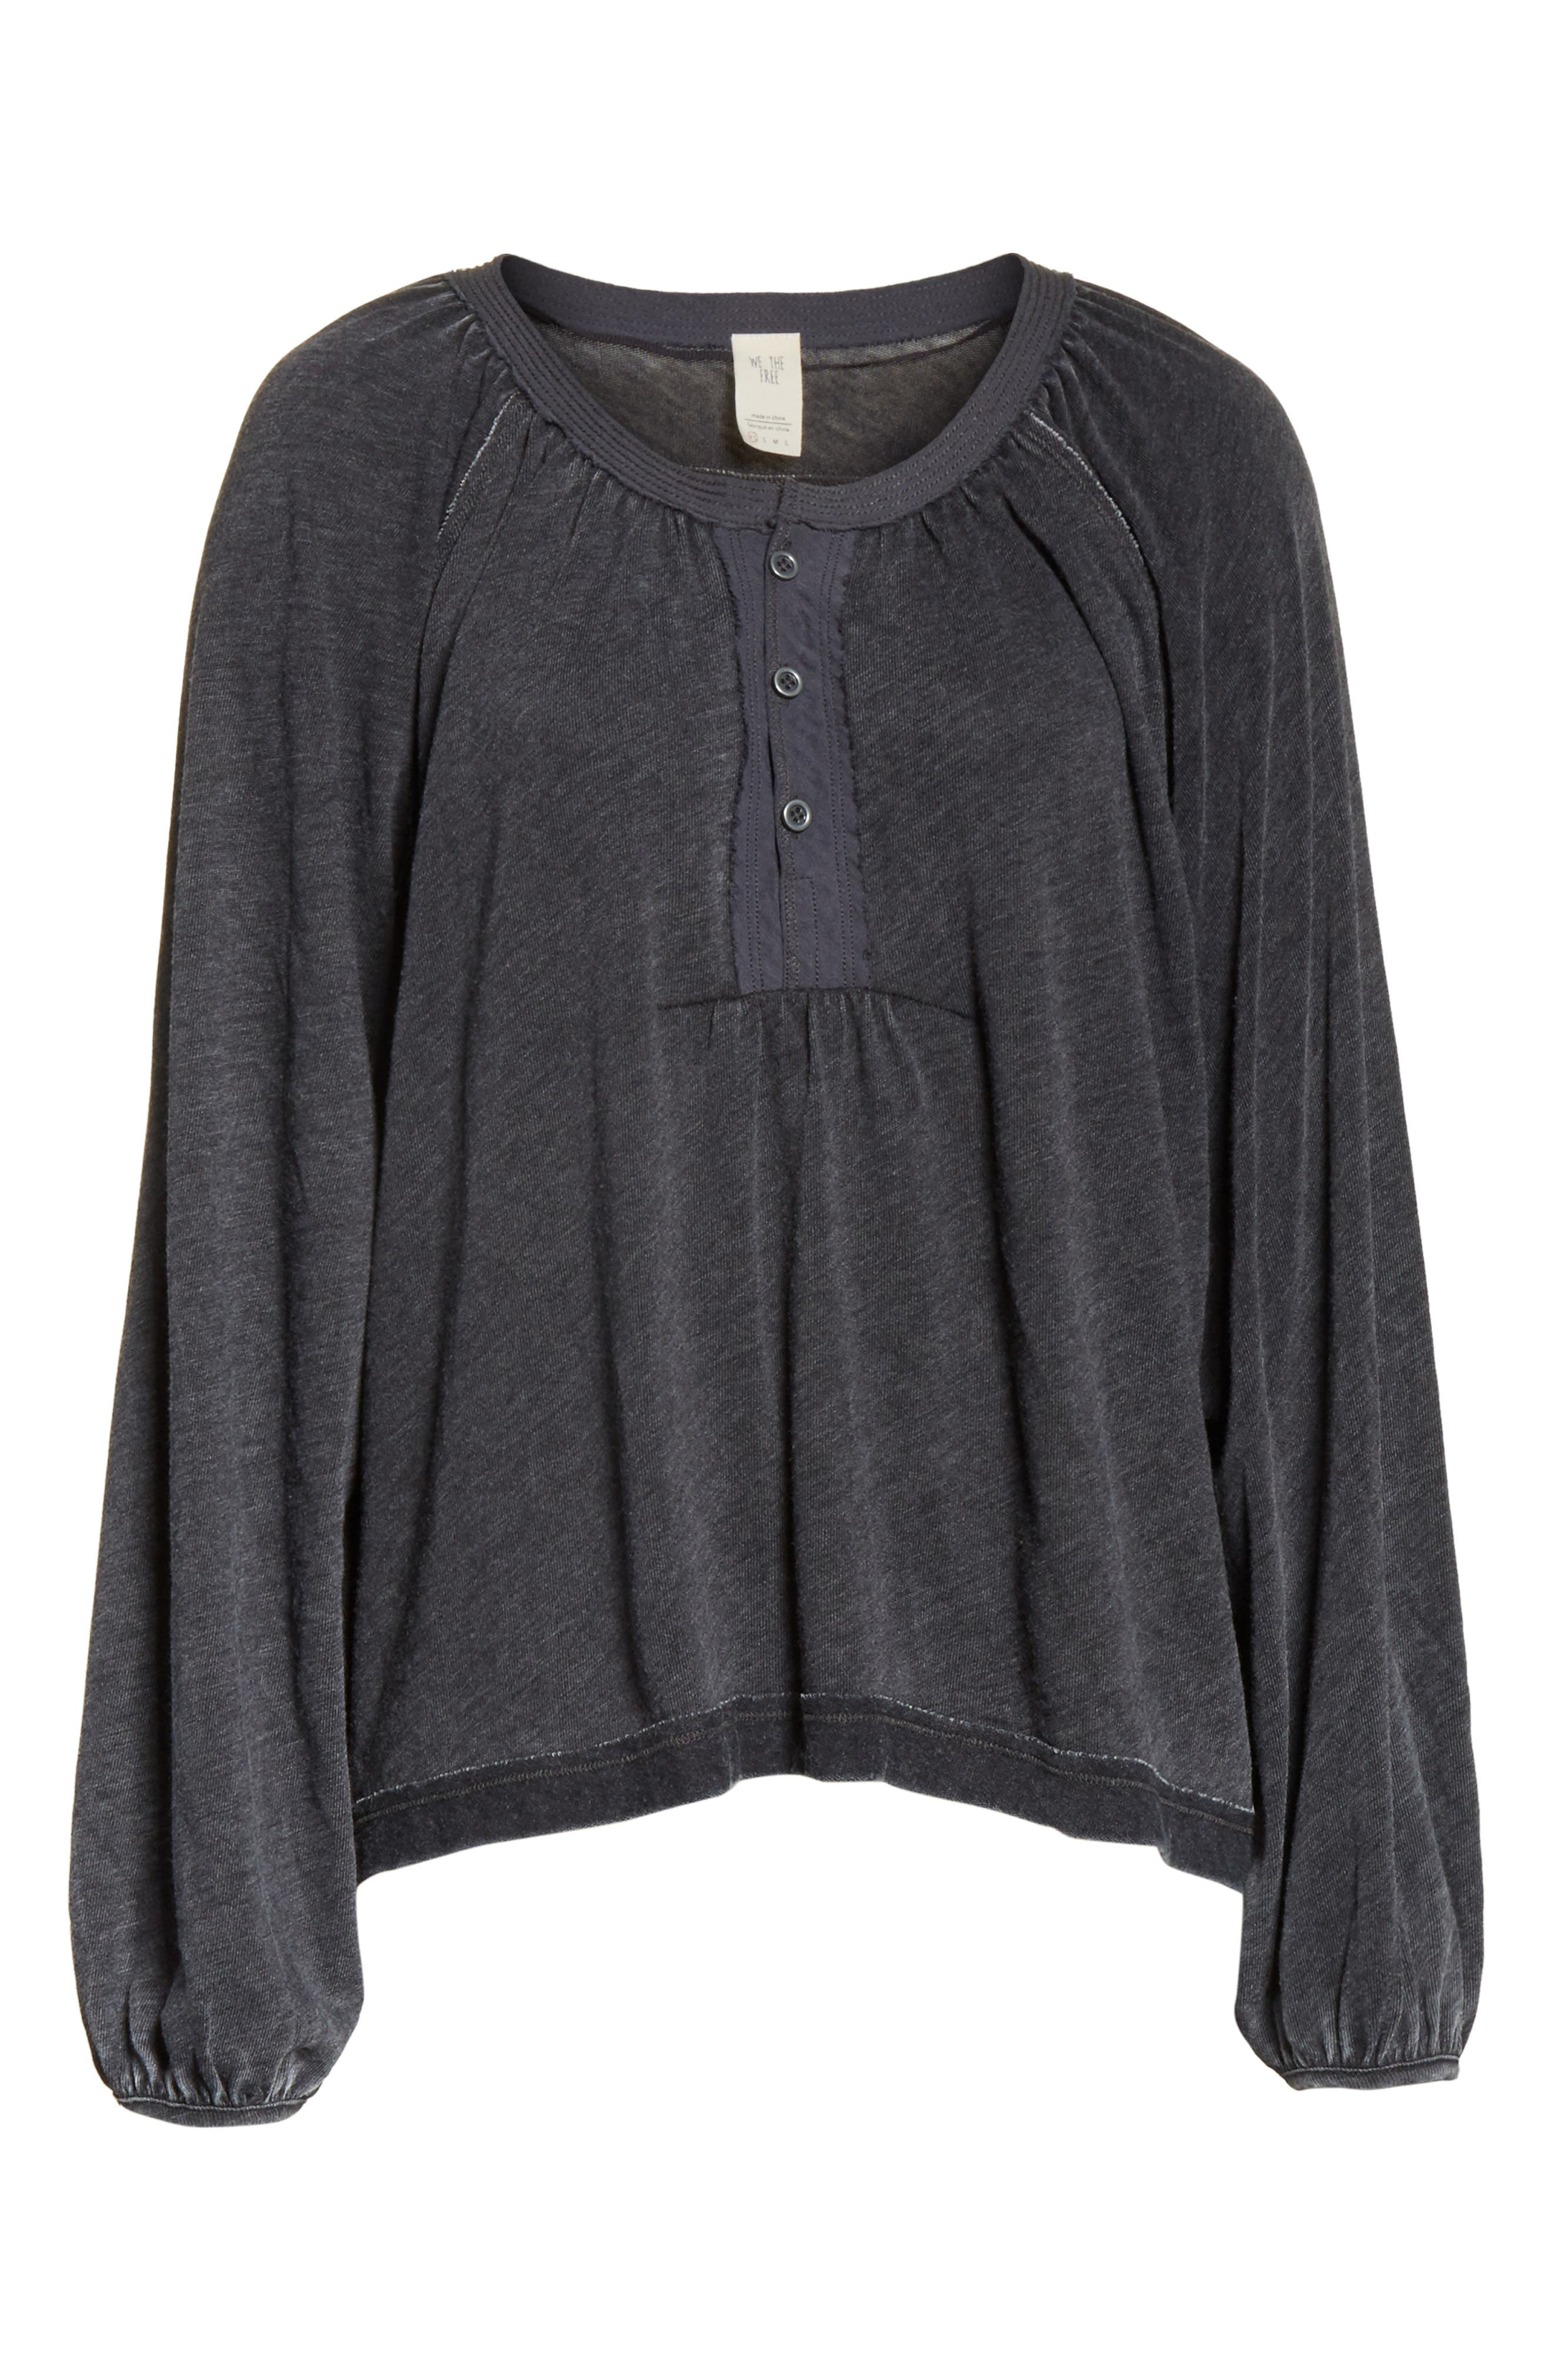 FREE PEOPLE, Acadia Henley Top, Alternate thumbnail 6, color, 001